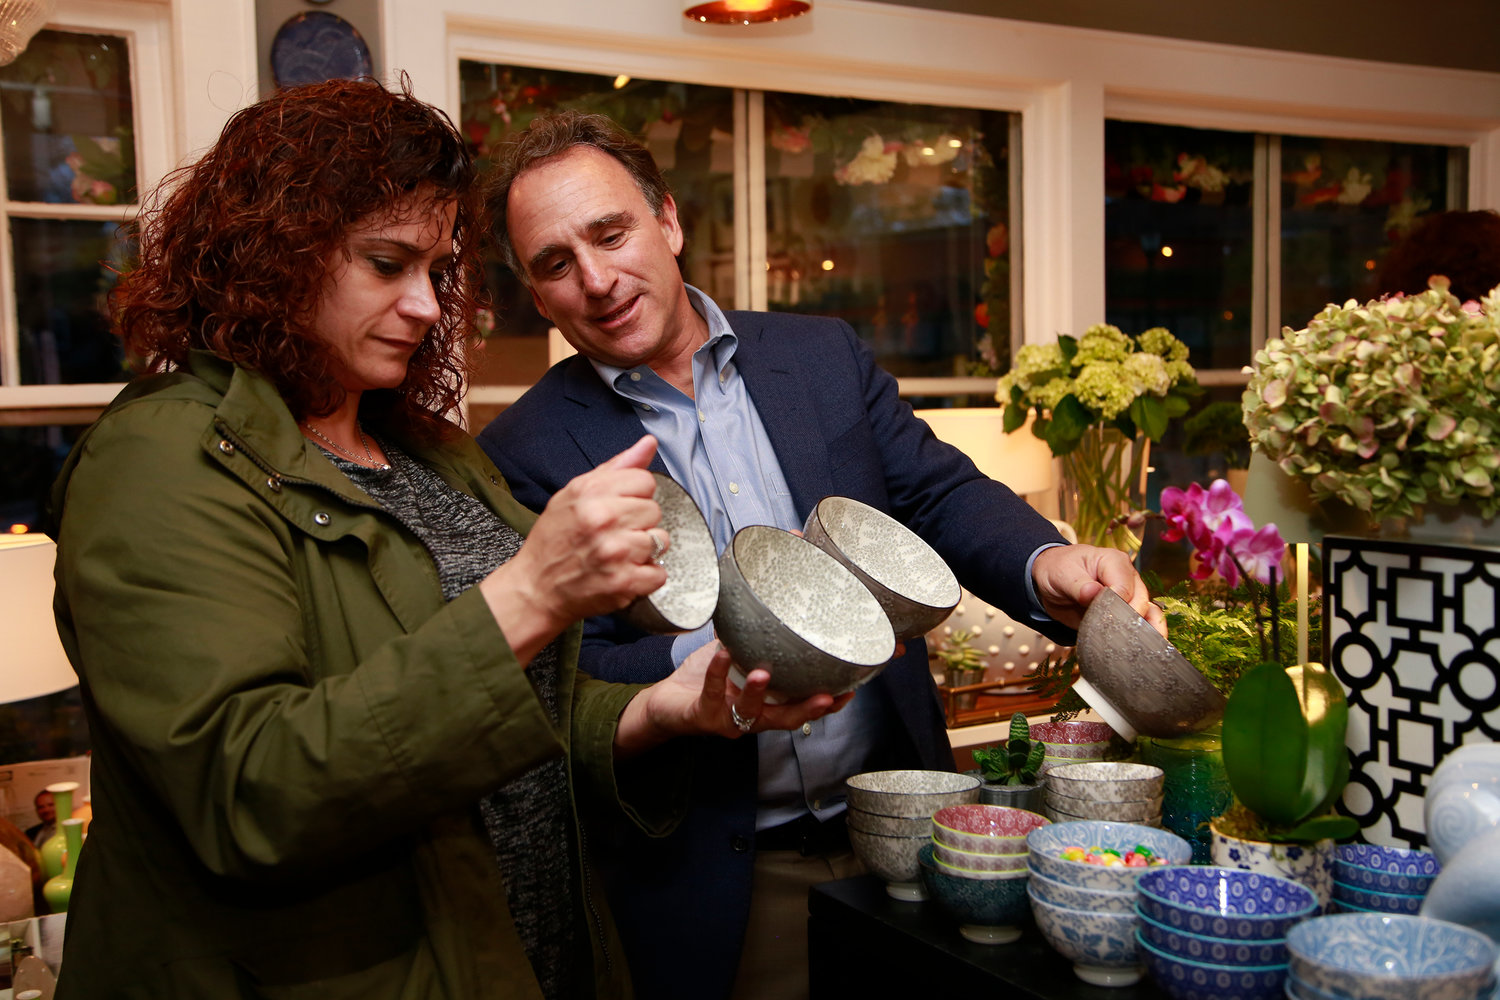 Heather Zwillich checked out some Zafferano bowls with Zefferano America President Barrett Gross.